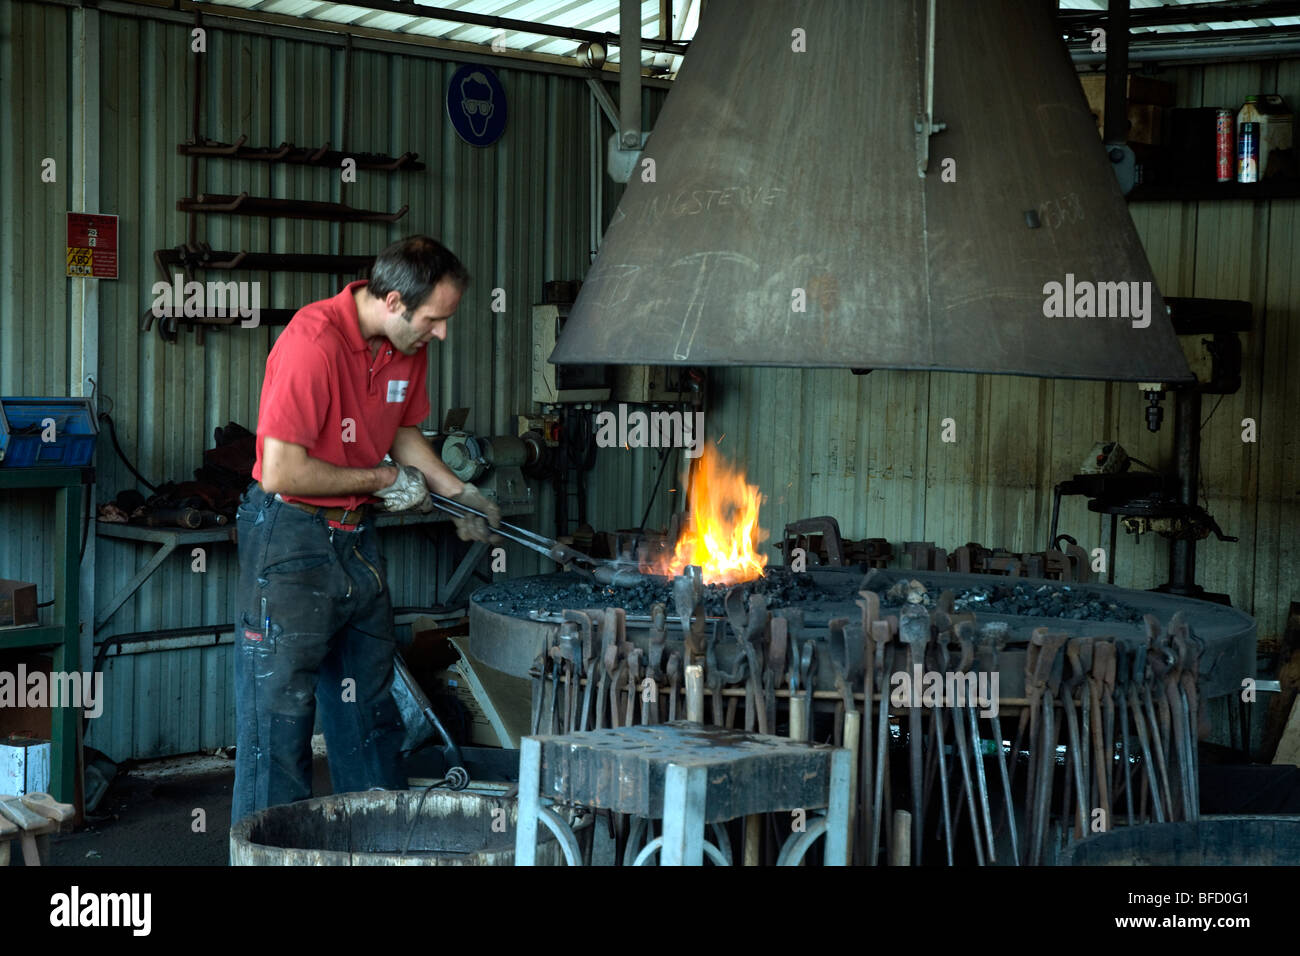 Forge Stock Photos & Forge Stock Images - Alamy